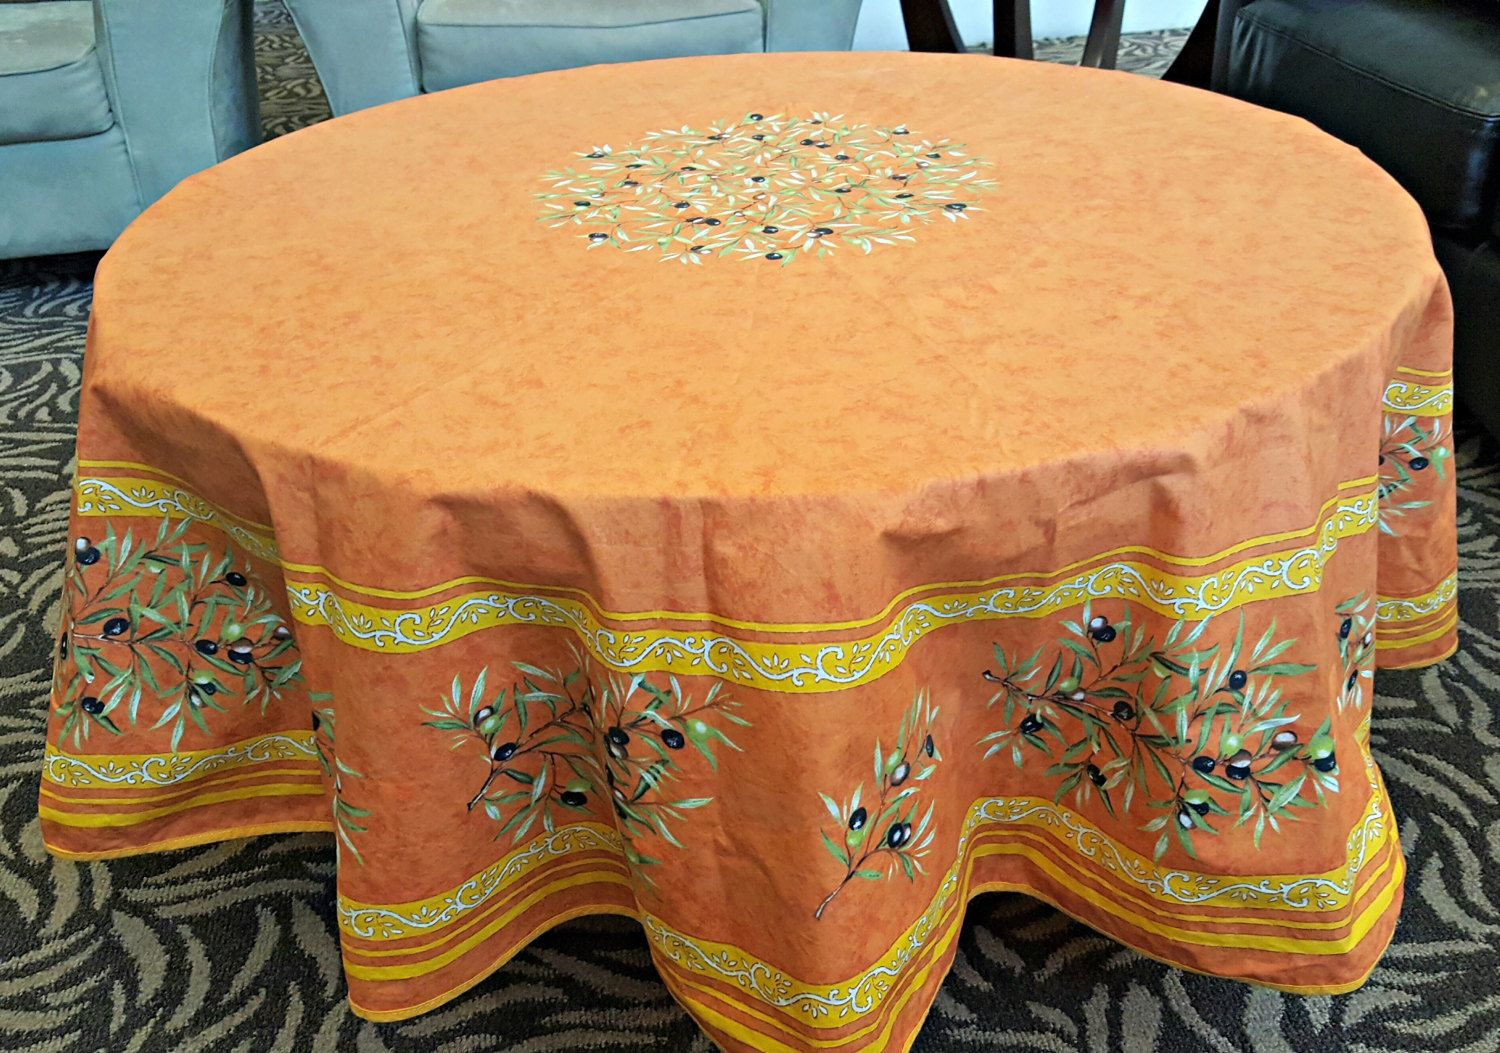 Tablecloth La Cigale Provence France French Country Olives Acrylic Coated Cotton Vintage 68 Round So Table Cloth Outdoor Ottoman Acrylic Coated